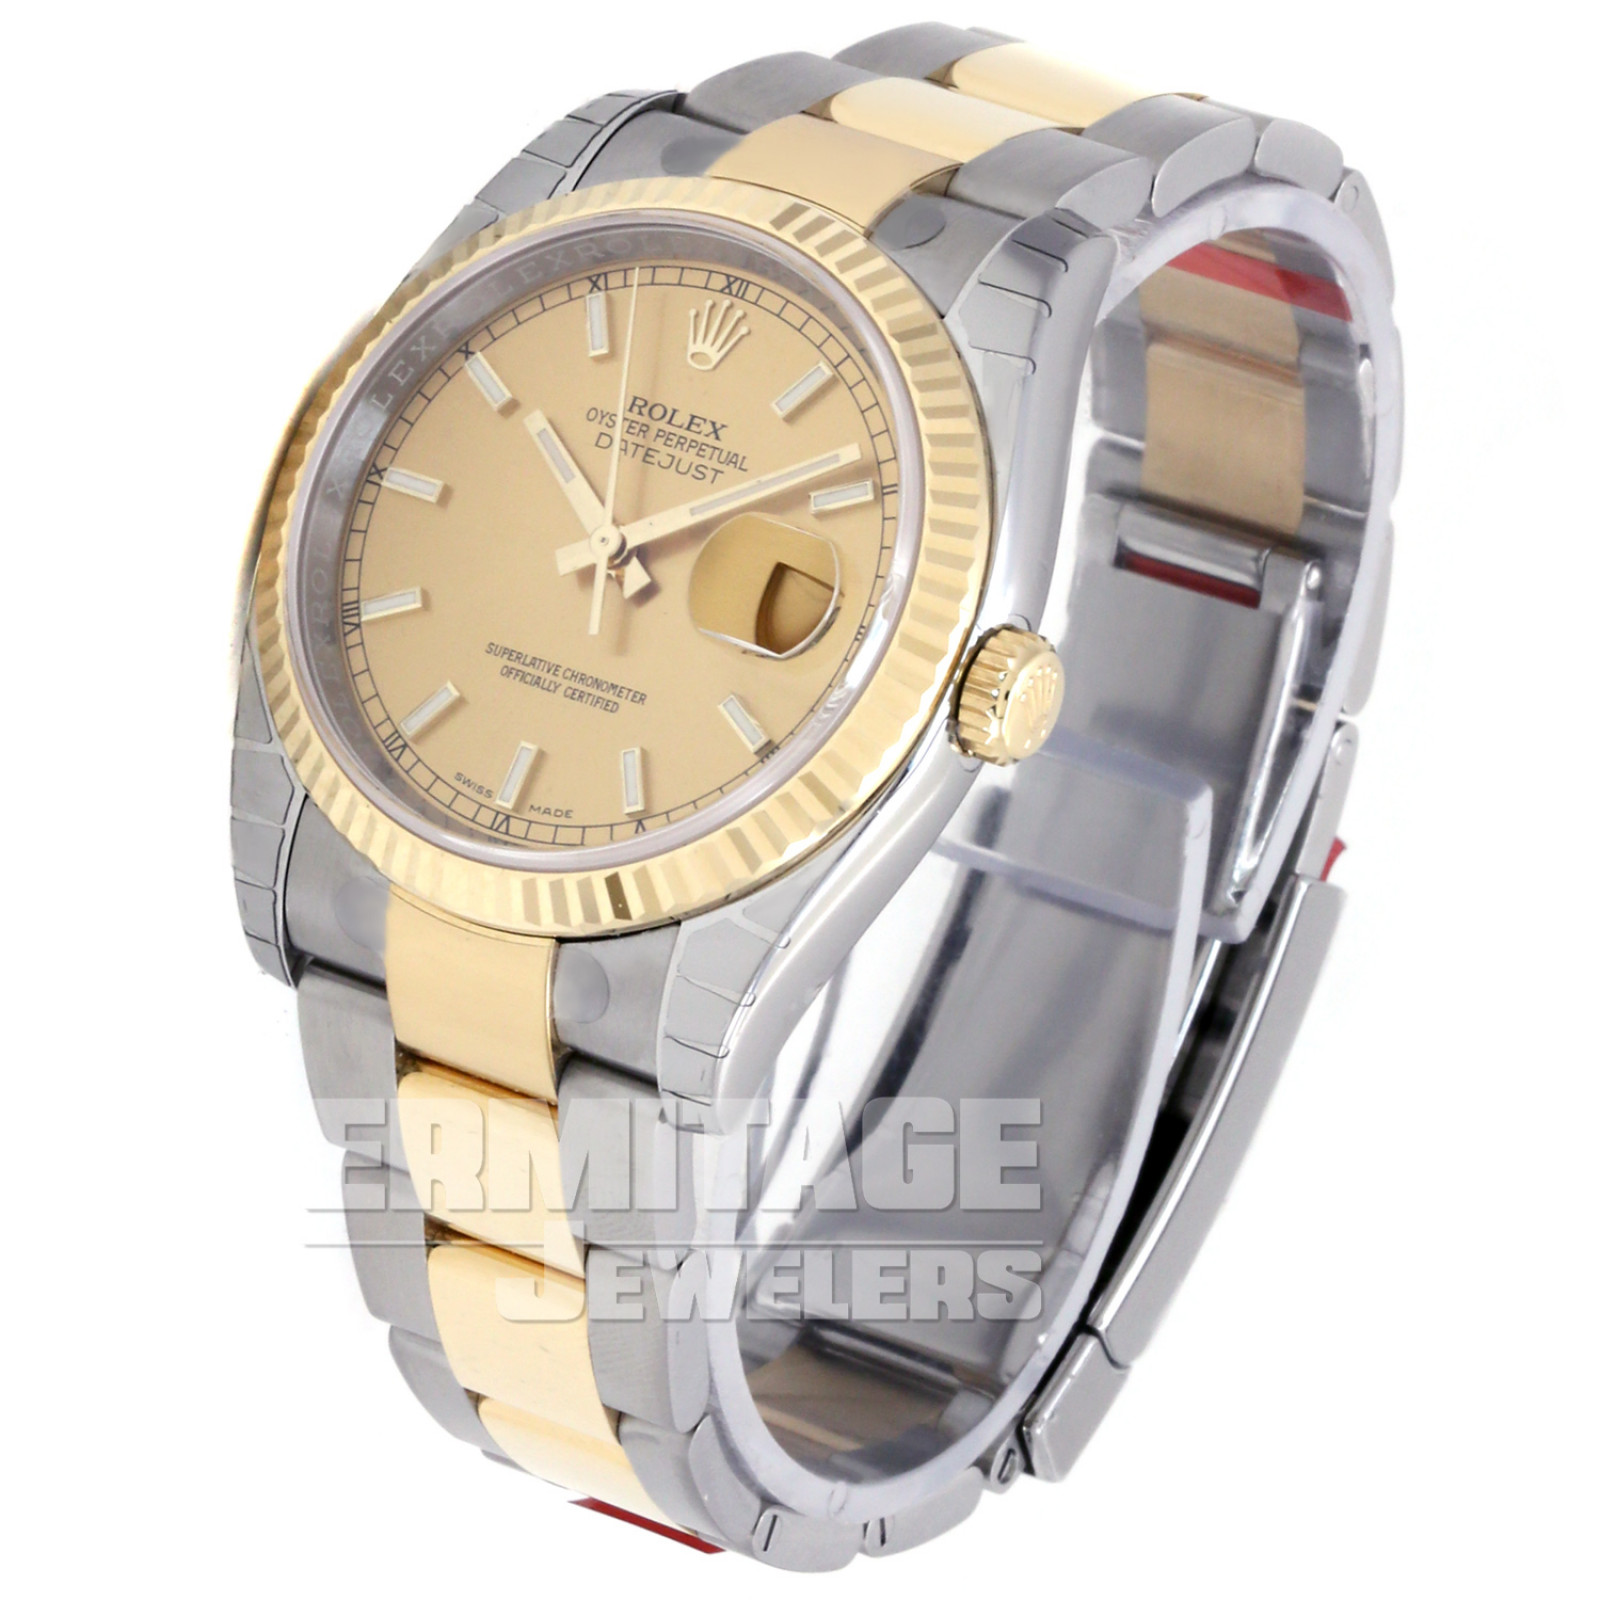 Classic Rolex Datejust 116233 with Champagne Dial